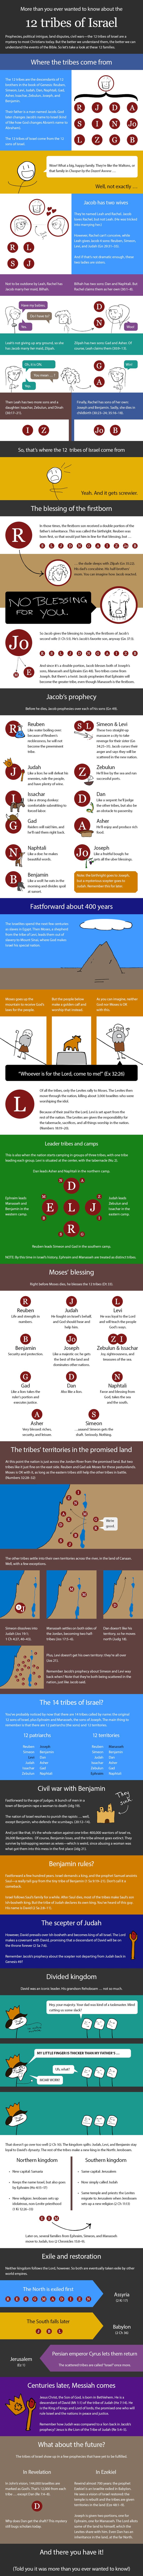 Scroll your way through the 12 tribes of Israel (infographic)